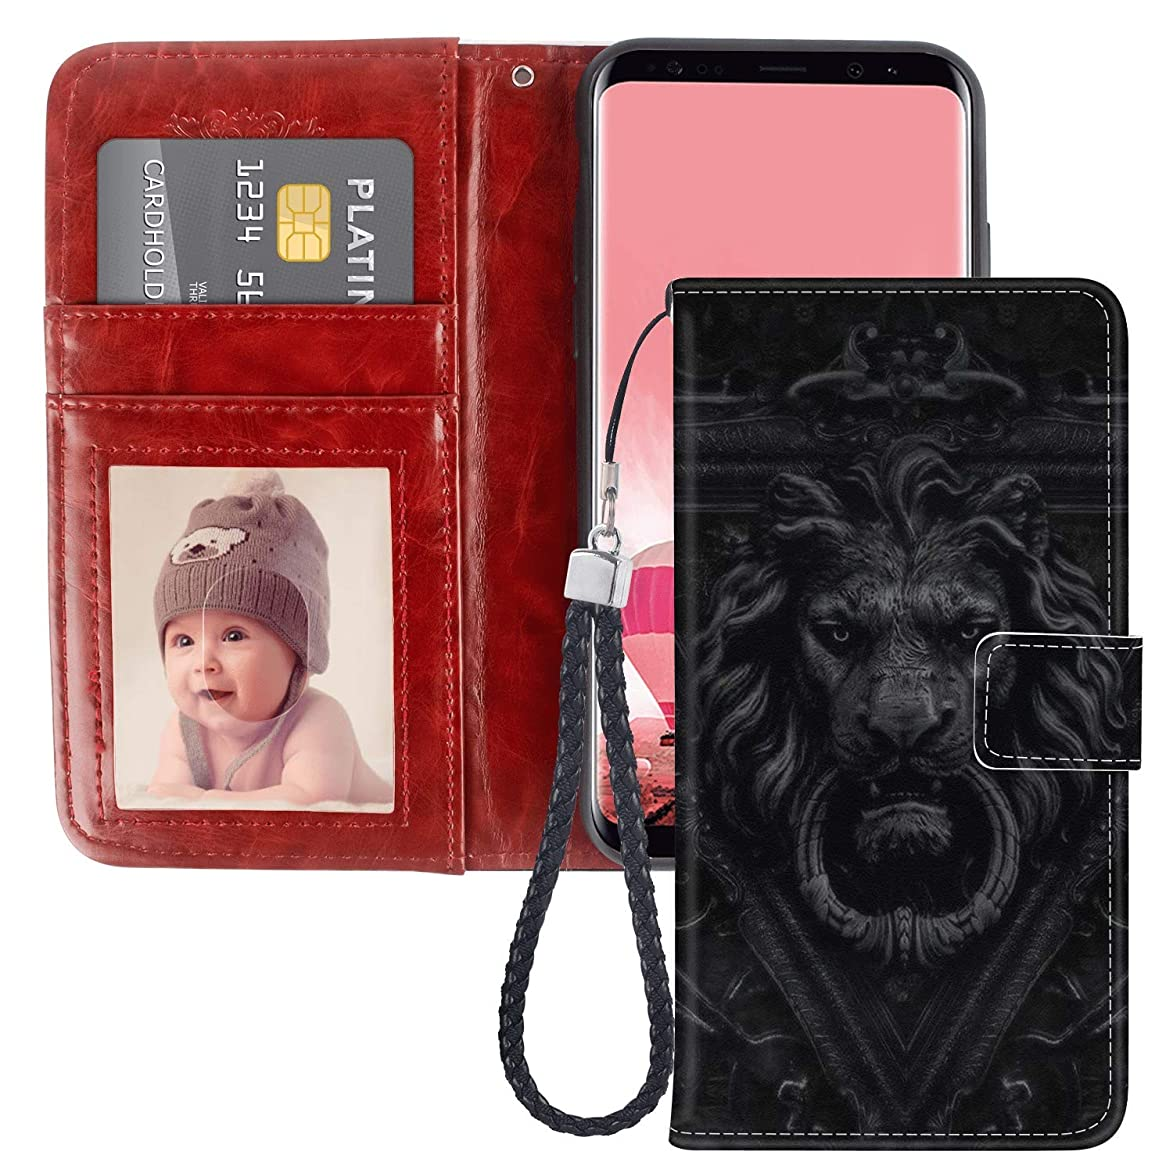 SITUOLI Lion Door Handle Samsung Galaxy S8 Wallet Case Wrist Strap Standable Kickstand PU Leather Card Holder Phone Case for Samsung Galaxy S8 jyi255963080822